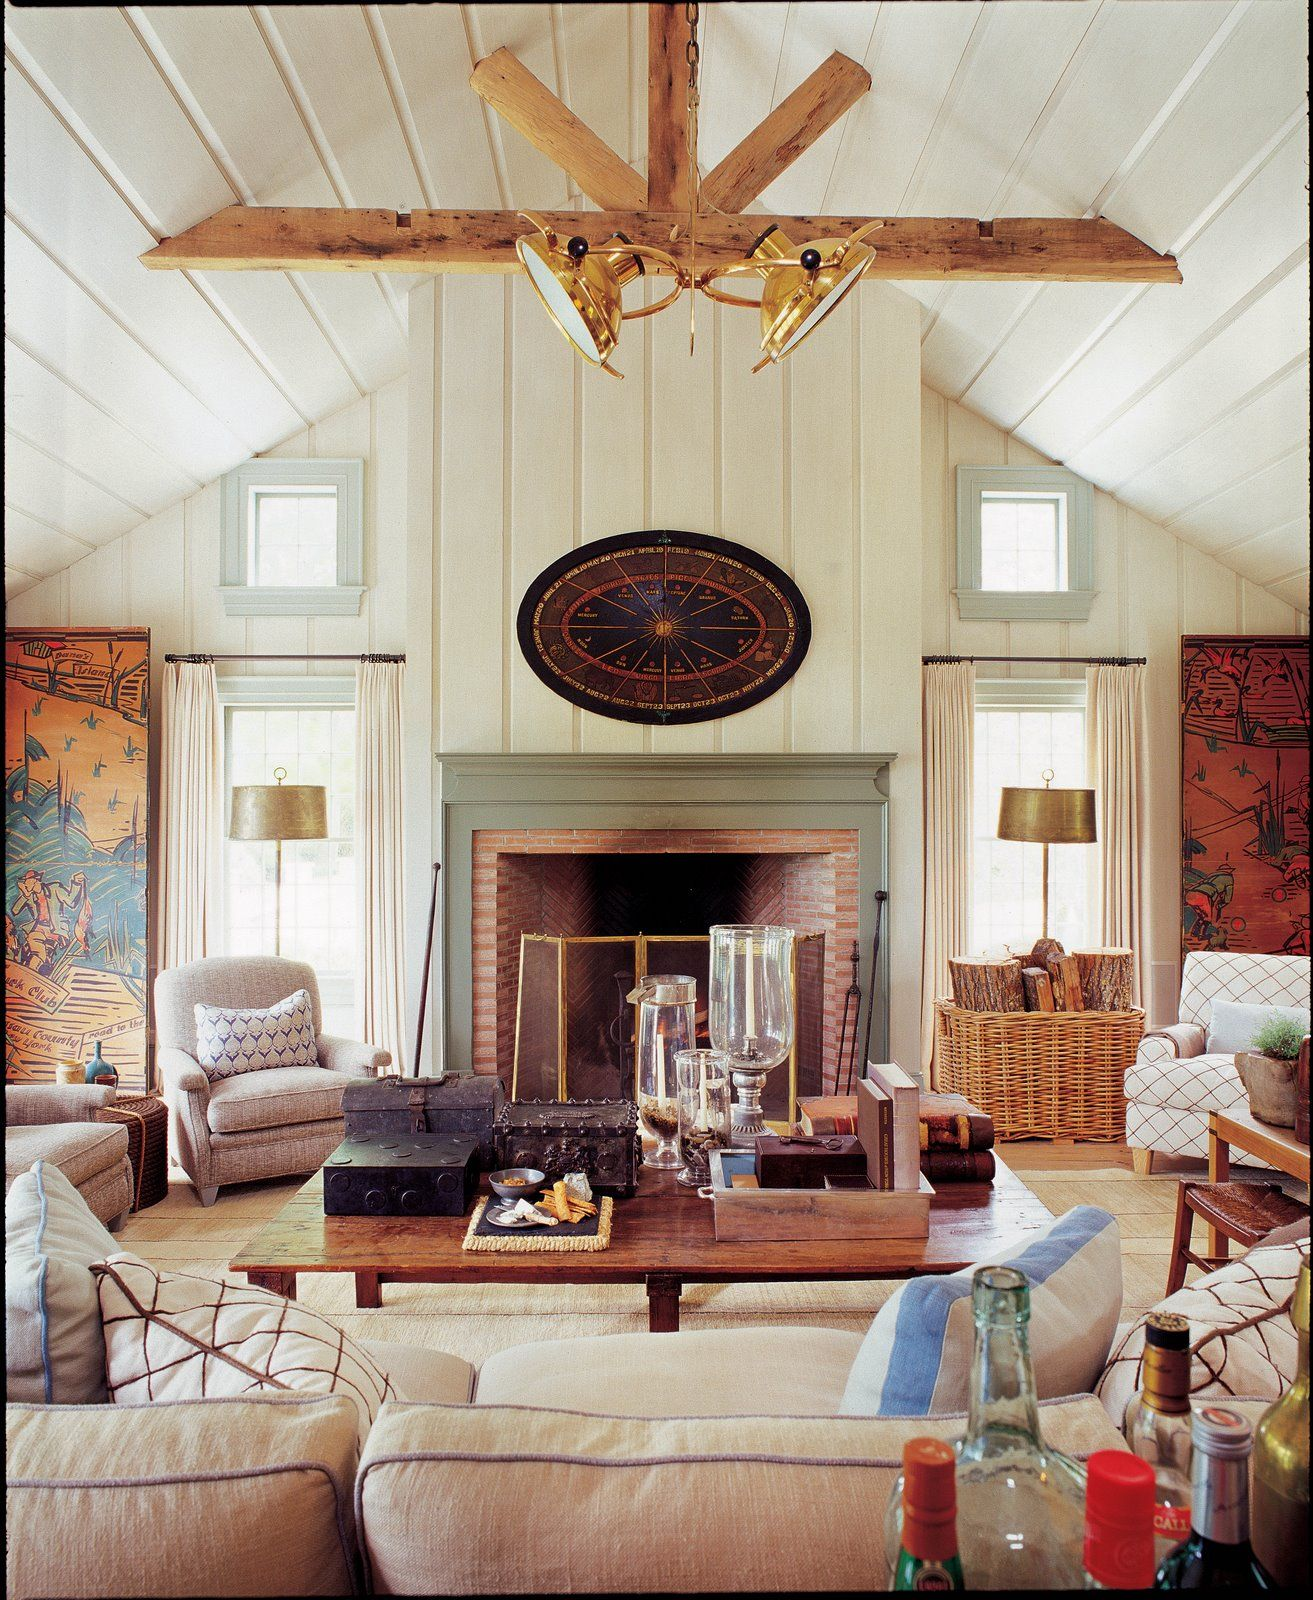 Warm And Cozy Dining Room Moodboard: Layout, Comfy And Inviting Around Brick Fireplace With